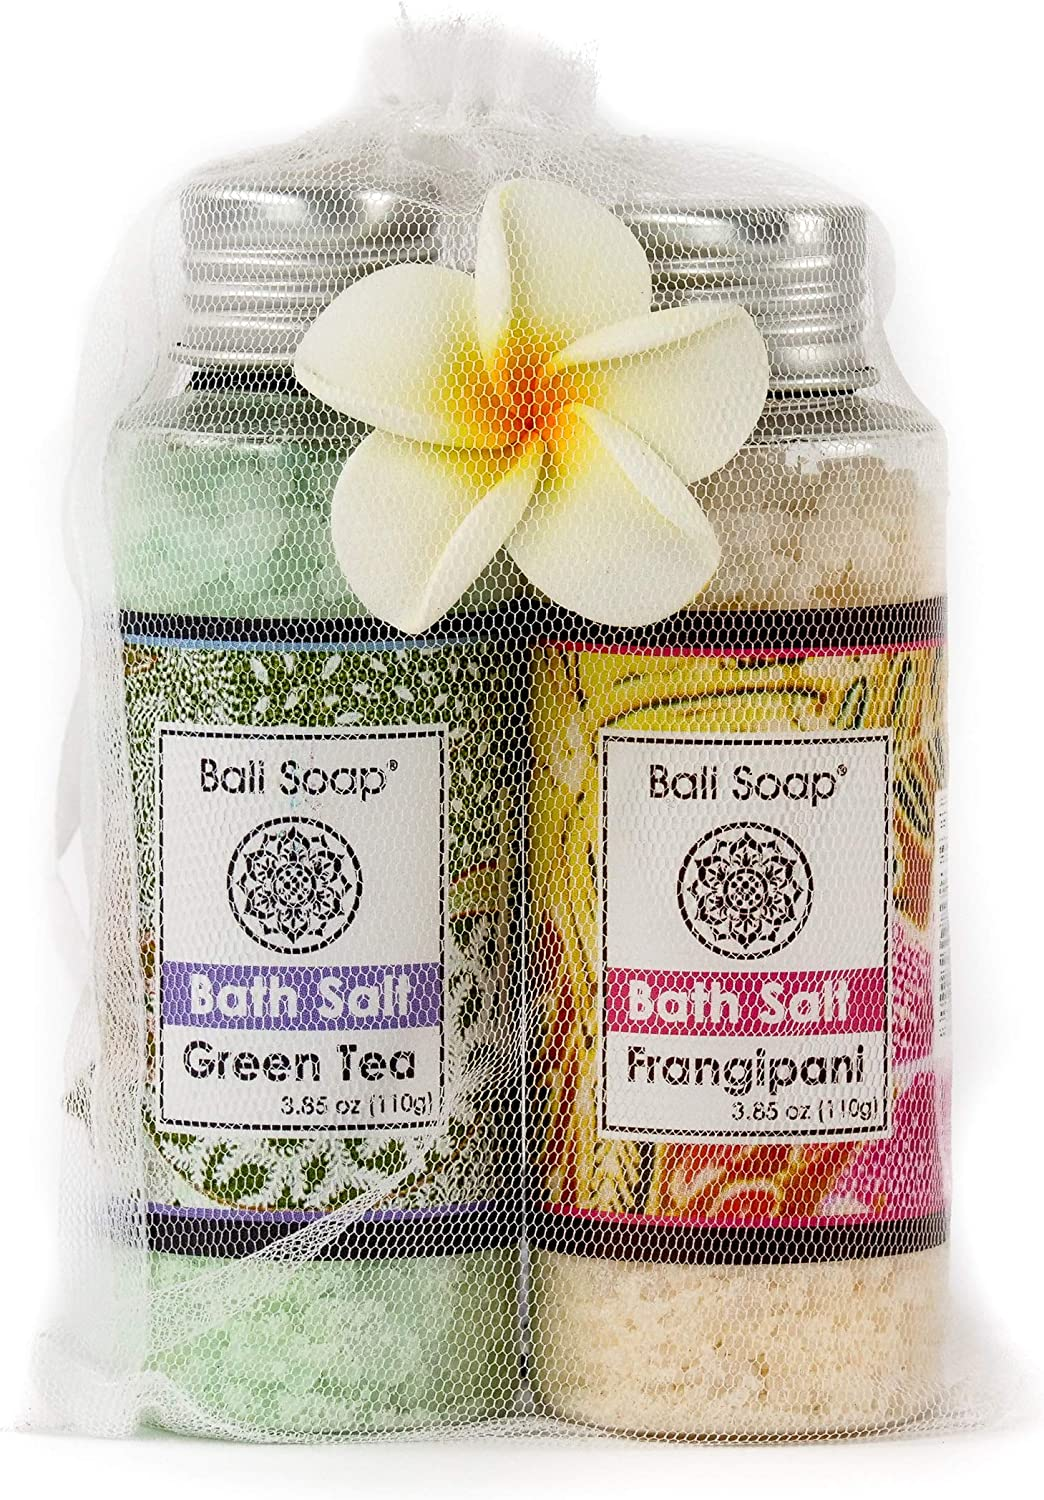 Green Tea & Frangipani Bath Salt Gift Set, Ideal for Sore Muscles, Detox, Relax & Stress Reliever, Small 2pc 3.8 Oz Each, by Bali Soap